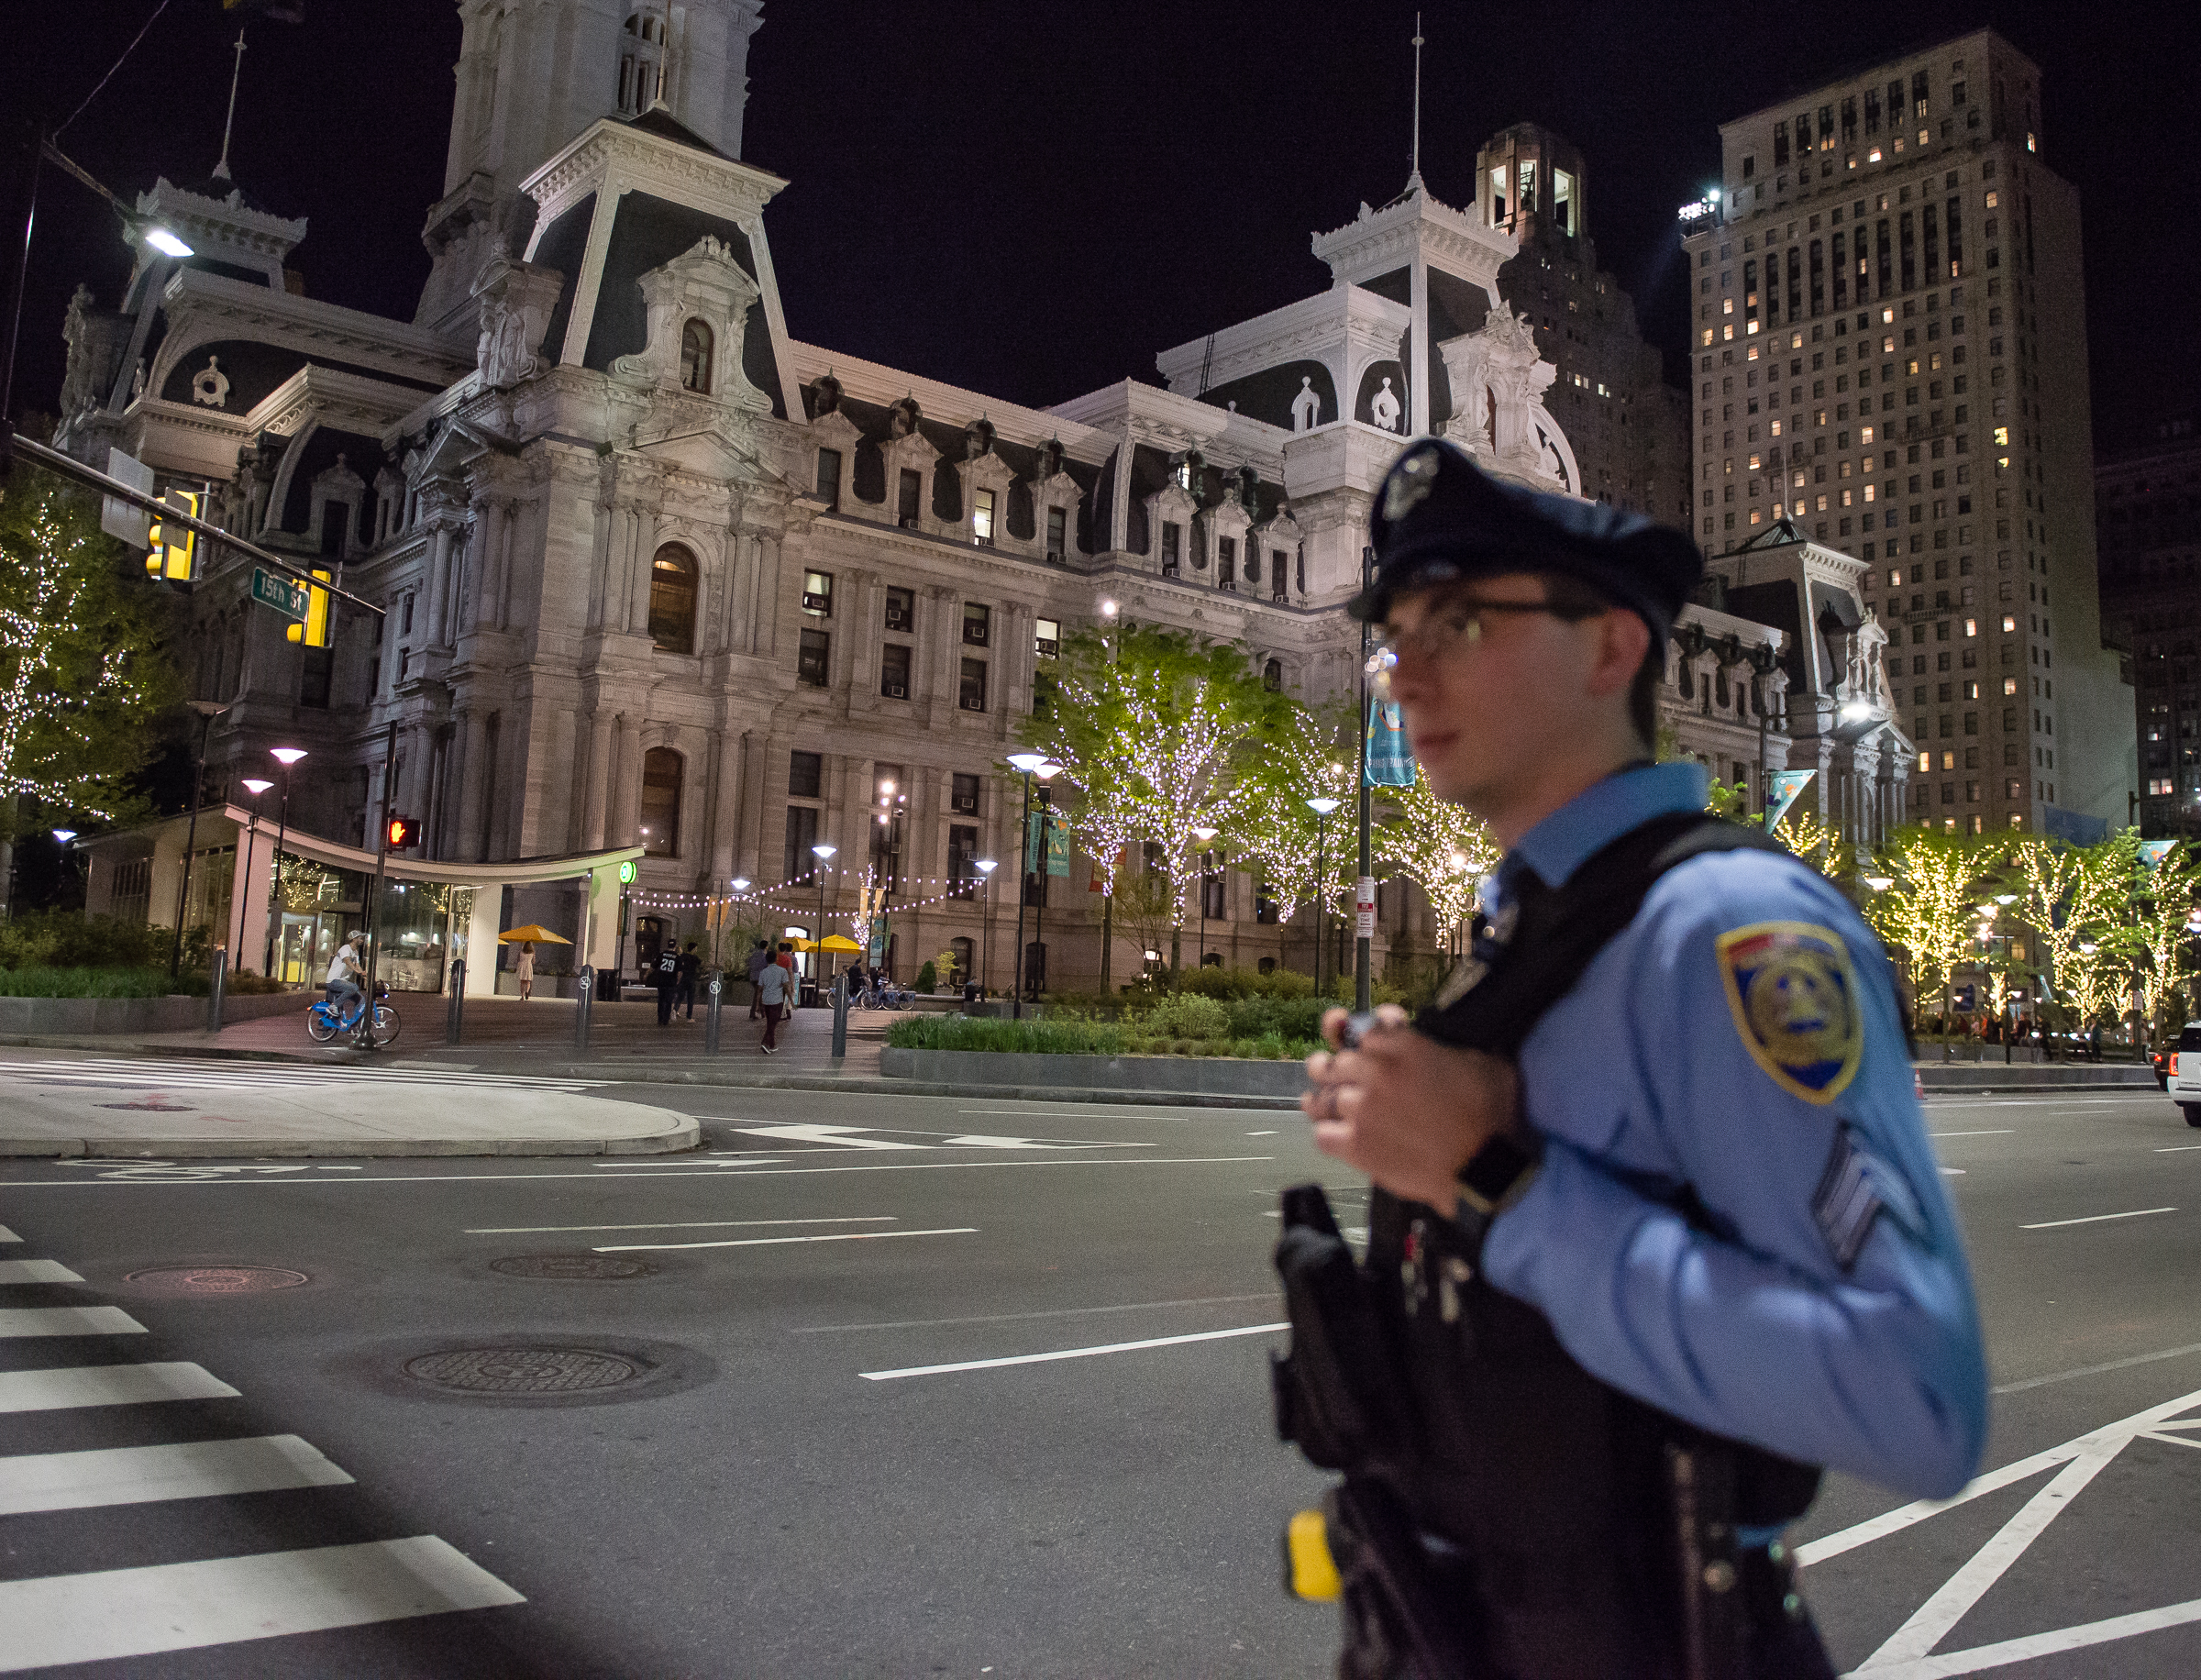 Sergeant Marc Pasquarella of the SEPTA Transit Police pauses in front of City Hall during his evening duties.